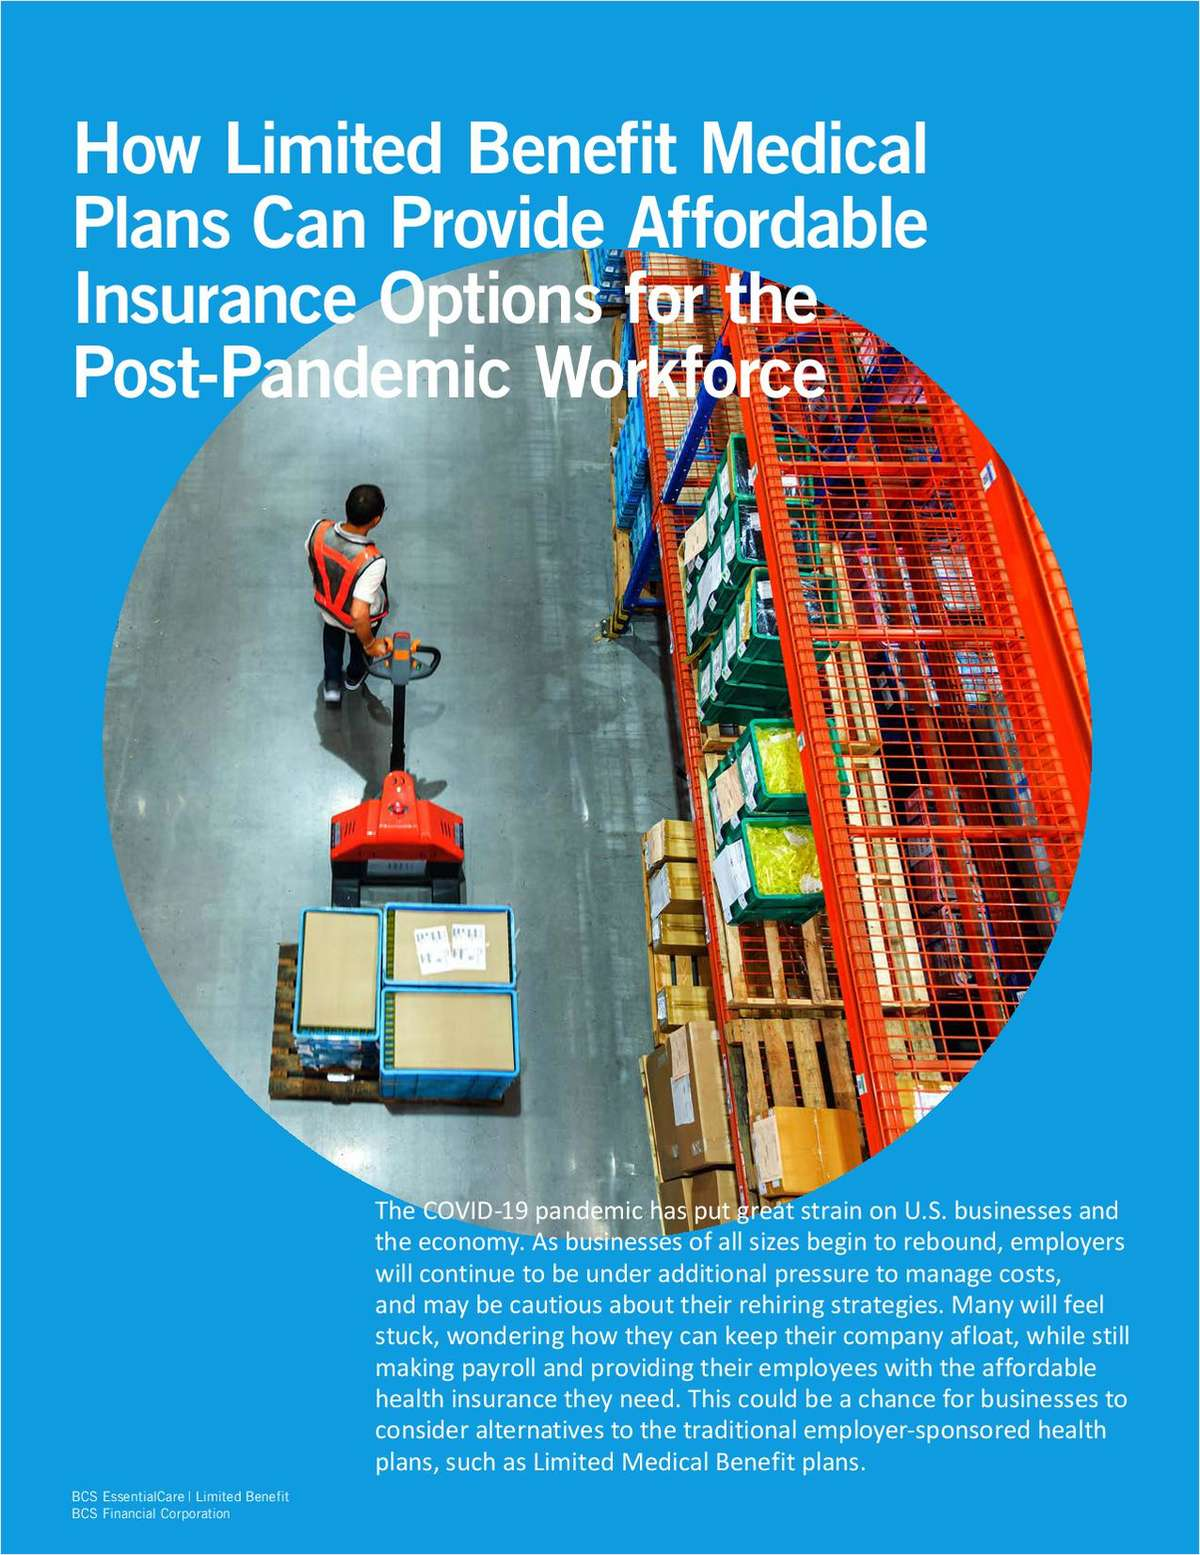 How to Manage Benefits Costs Now and Post-Pandemic